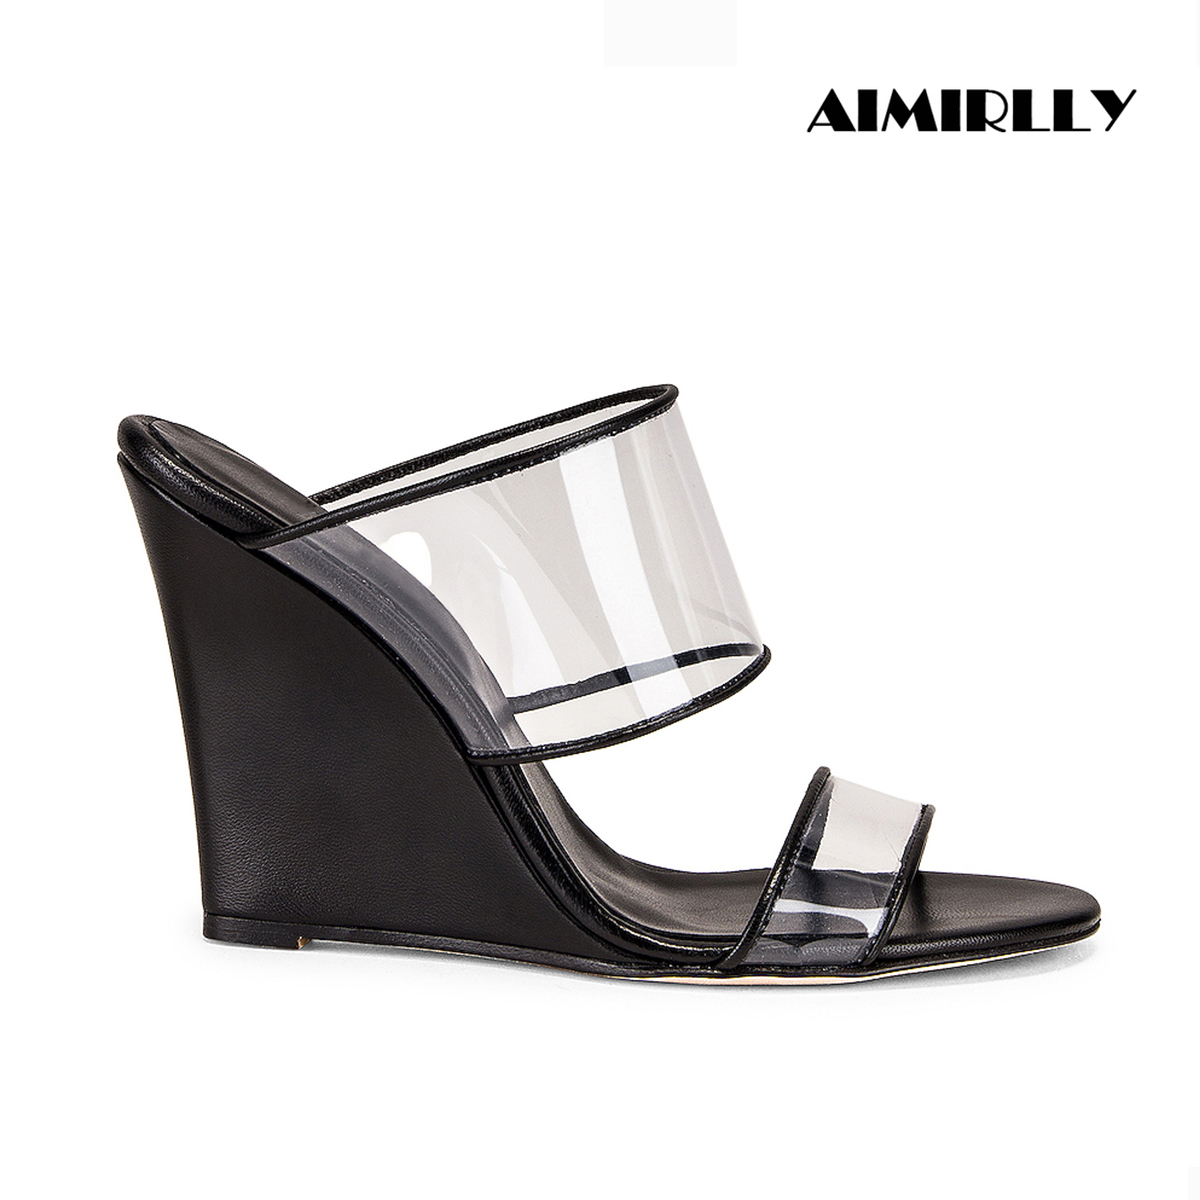 Aimirlly Women Shoes Peep Toe Wedges Heels Sandals Transparent PVC Straps Mules Slip On Summer Comfortable Slippers Casual